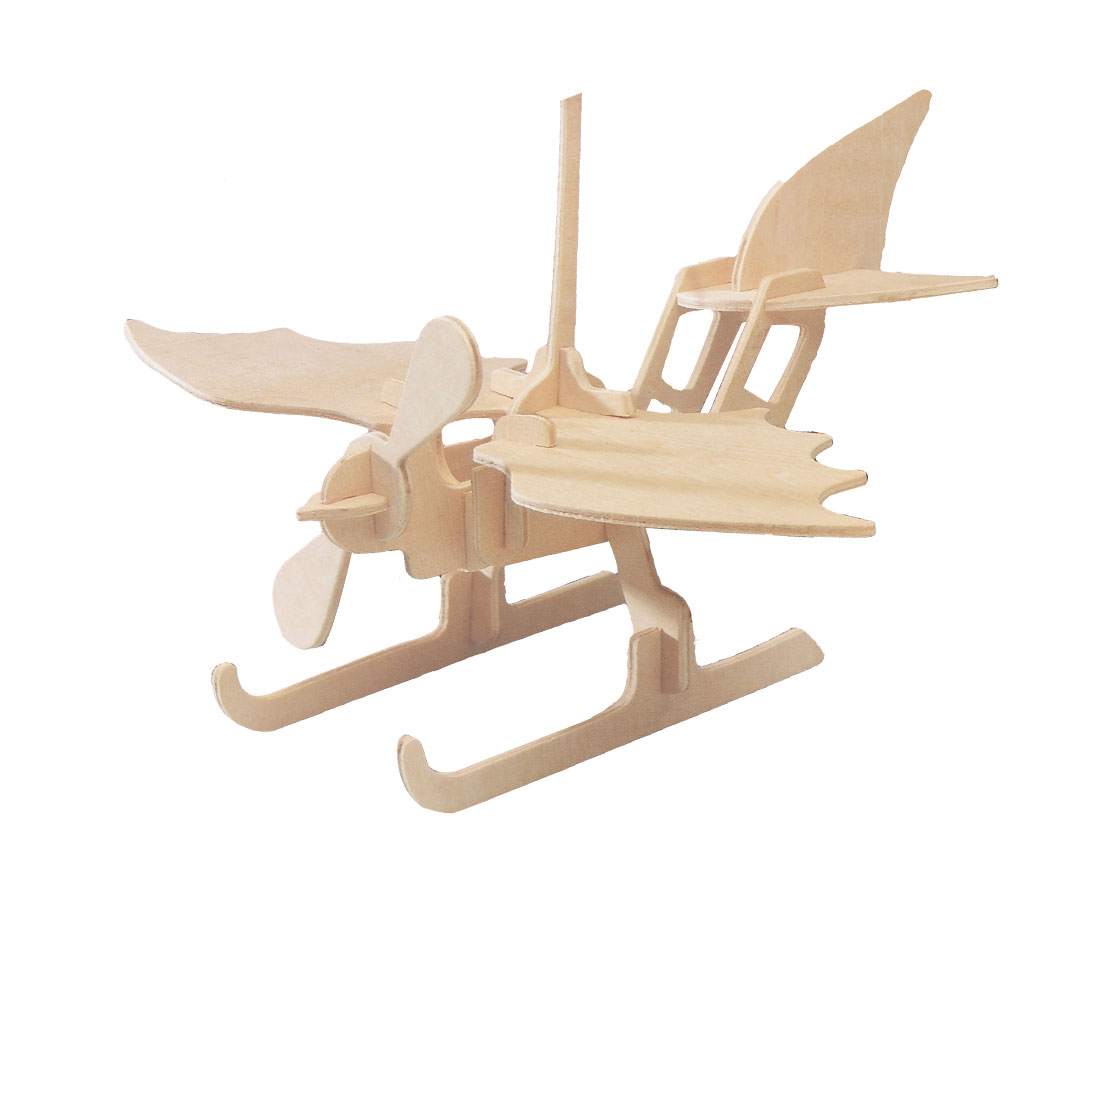 3D Seaplane Model Wood DIY Assembly Puzzled Toy Woodcraft Construction Kit